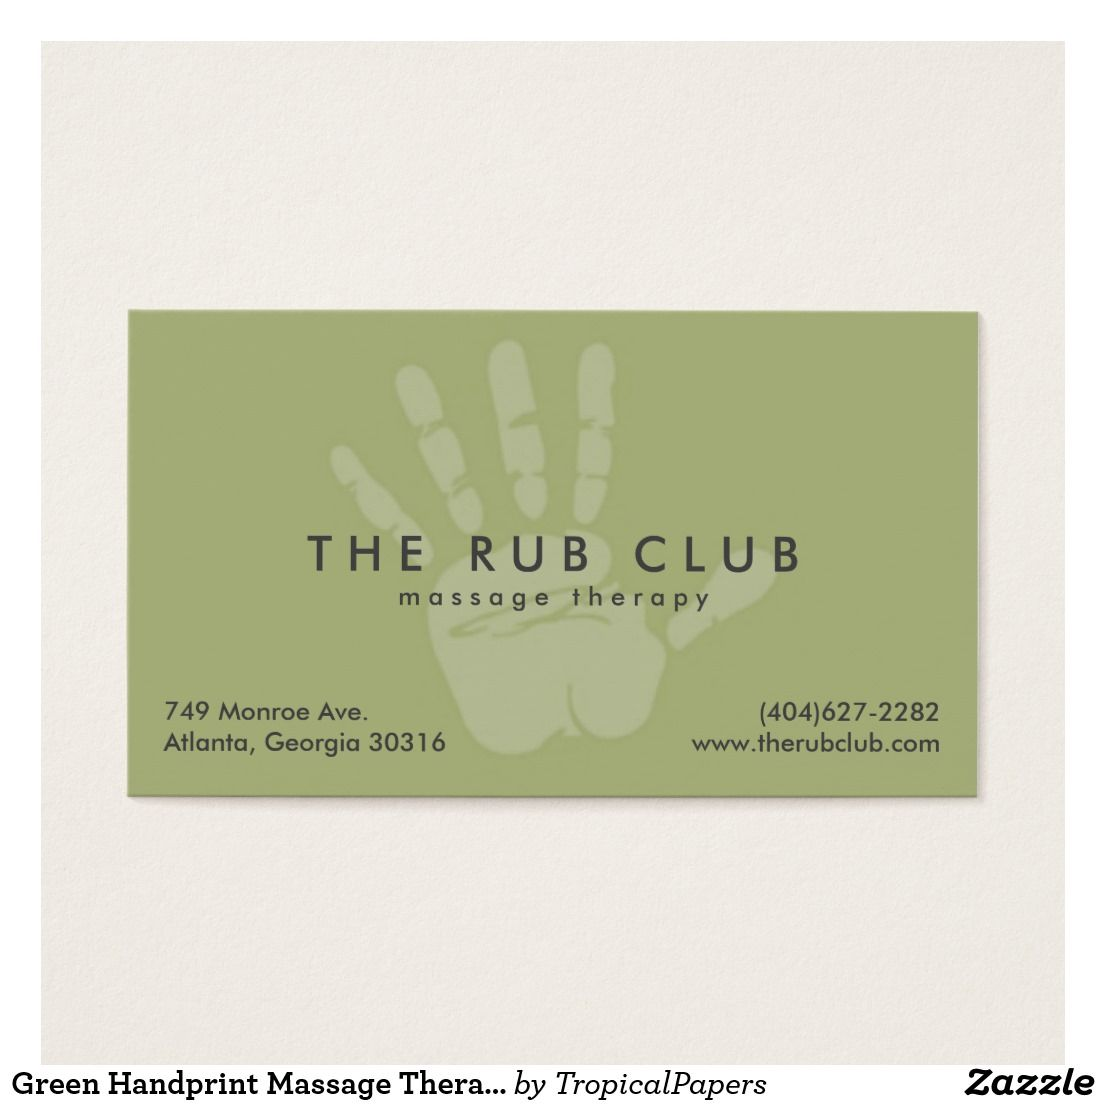 Green handprint massage therapy business card pinterest green handprint massage therapy business card sold thank you to the customer in brandon reheart Images